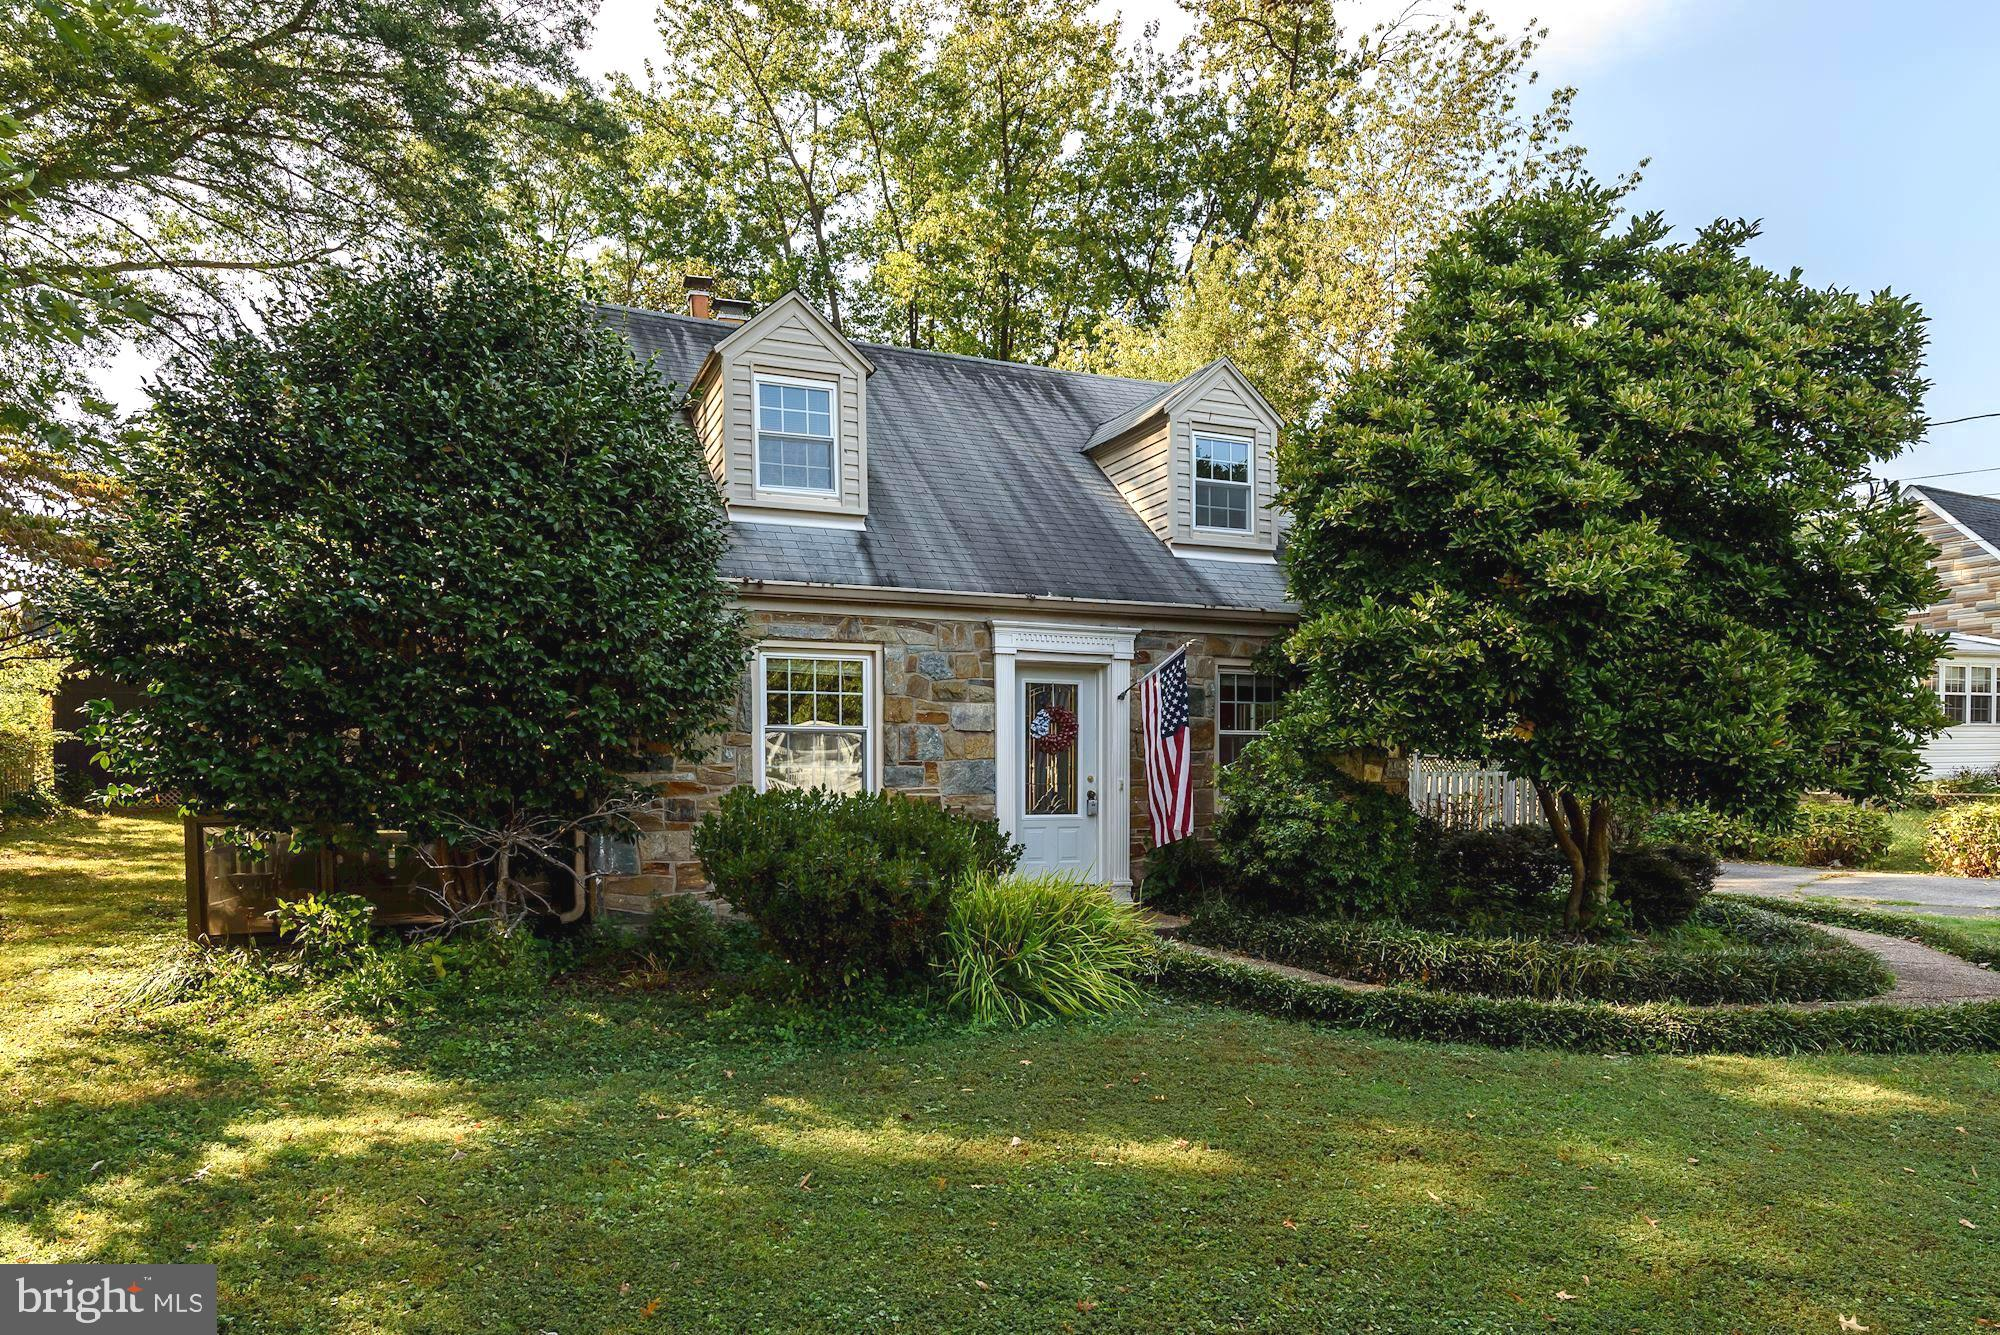 Charming, updated cape code on a huge lot in Alexandria! This home offers plentiful natural light, a spacious kitchen, family room & sunroom addition, gas fireplace, pellet stove and more!  Spacious bedrooms and updated bathrooms.  Step out on the deck off the master bedroom to enjoy the private treed lot overlooking the fenced-in backyard.  Some of the other home updates include newer windows, Hot water heater and boiler, newer  gutter system (Leaf Defier with 25 year transferable guarantee), new gas fireplace insert and two sheds.     Large driveway.  Situated near plenty of shopping and dining options and only minutes to Old Town Alexandria.  This home is being offered As-Is.